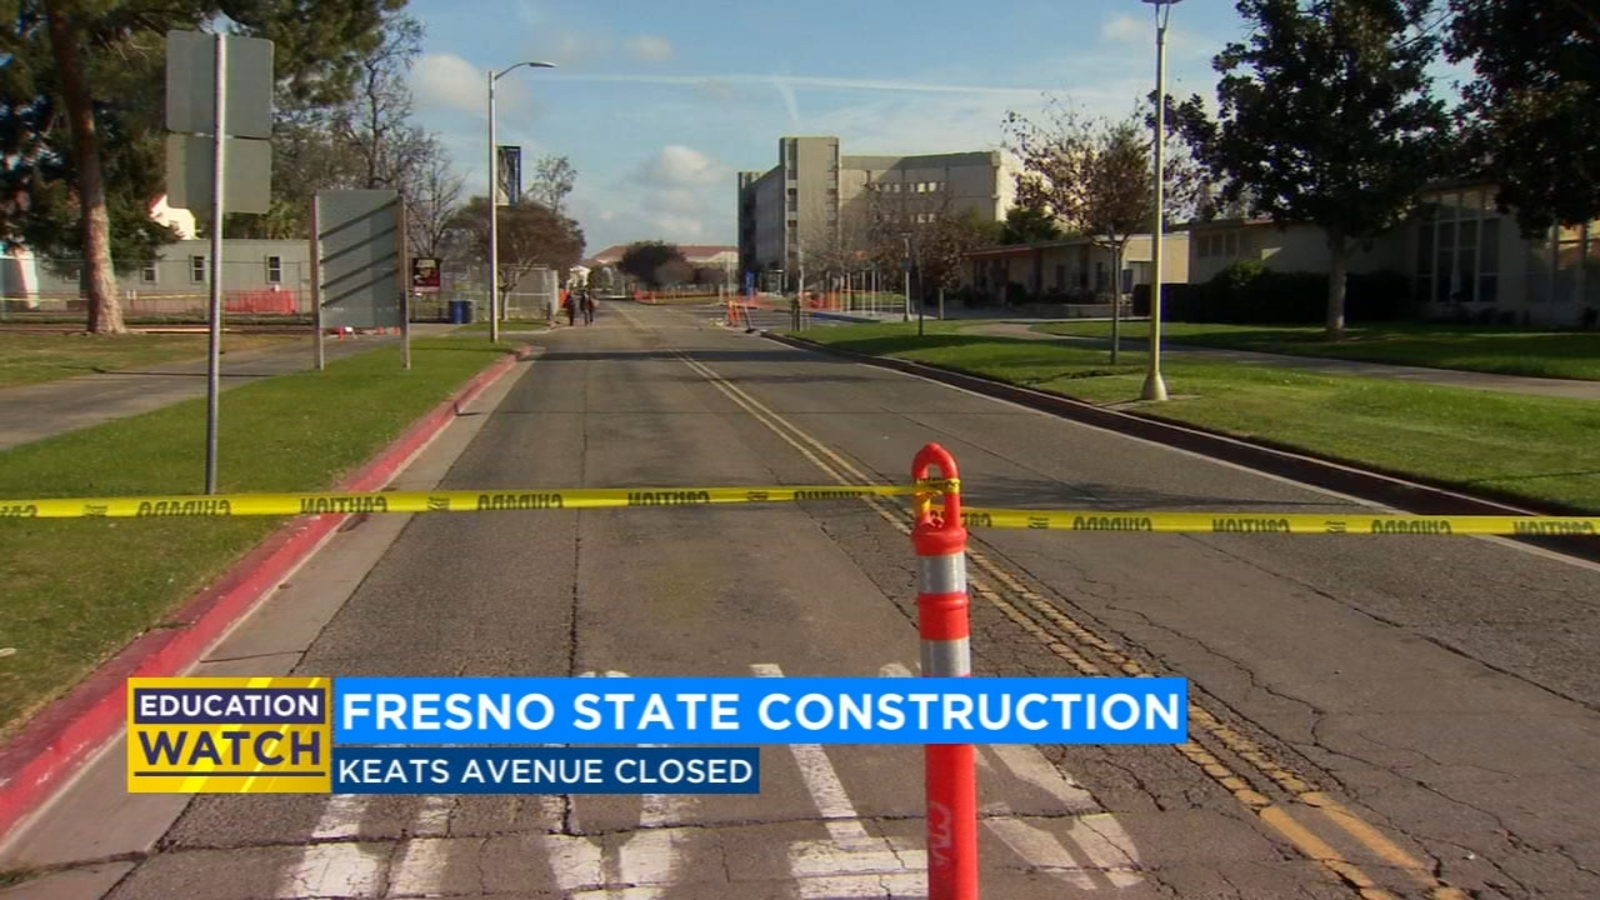 Fresno State students to see road closure upon return from winter break